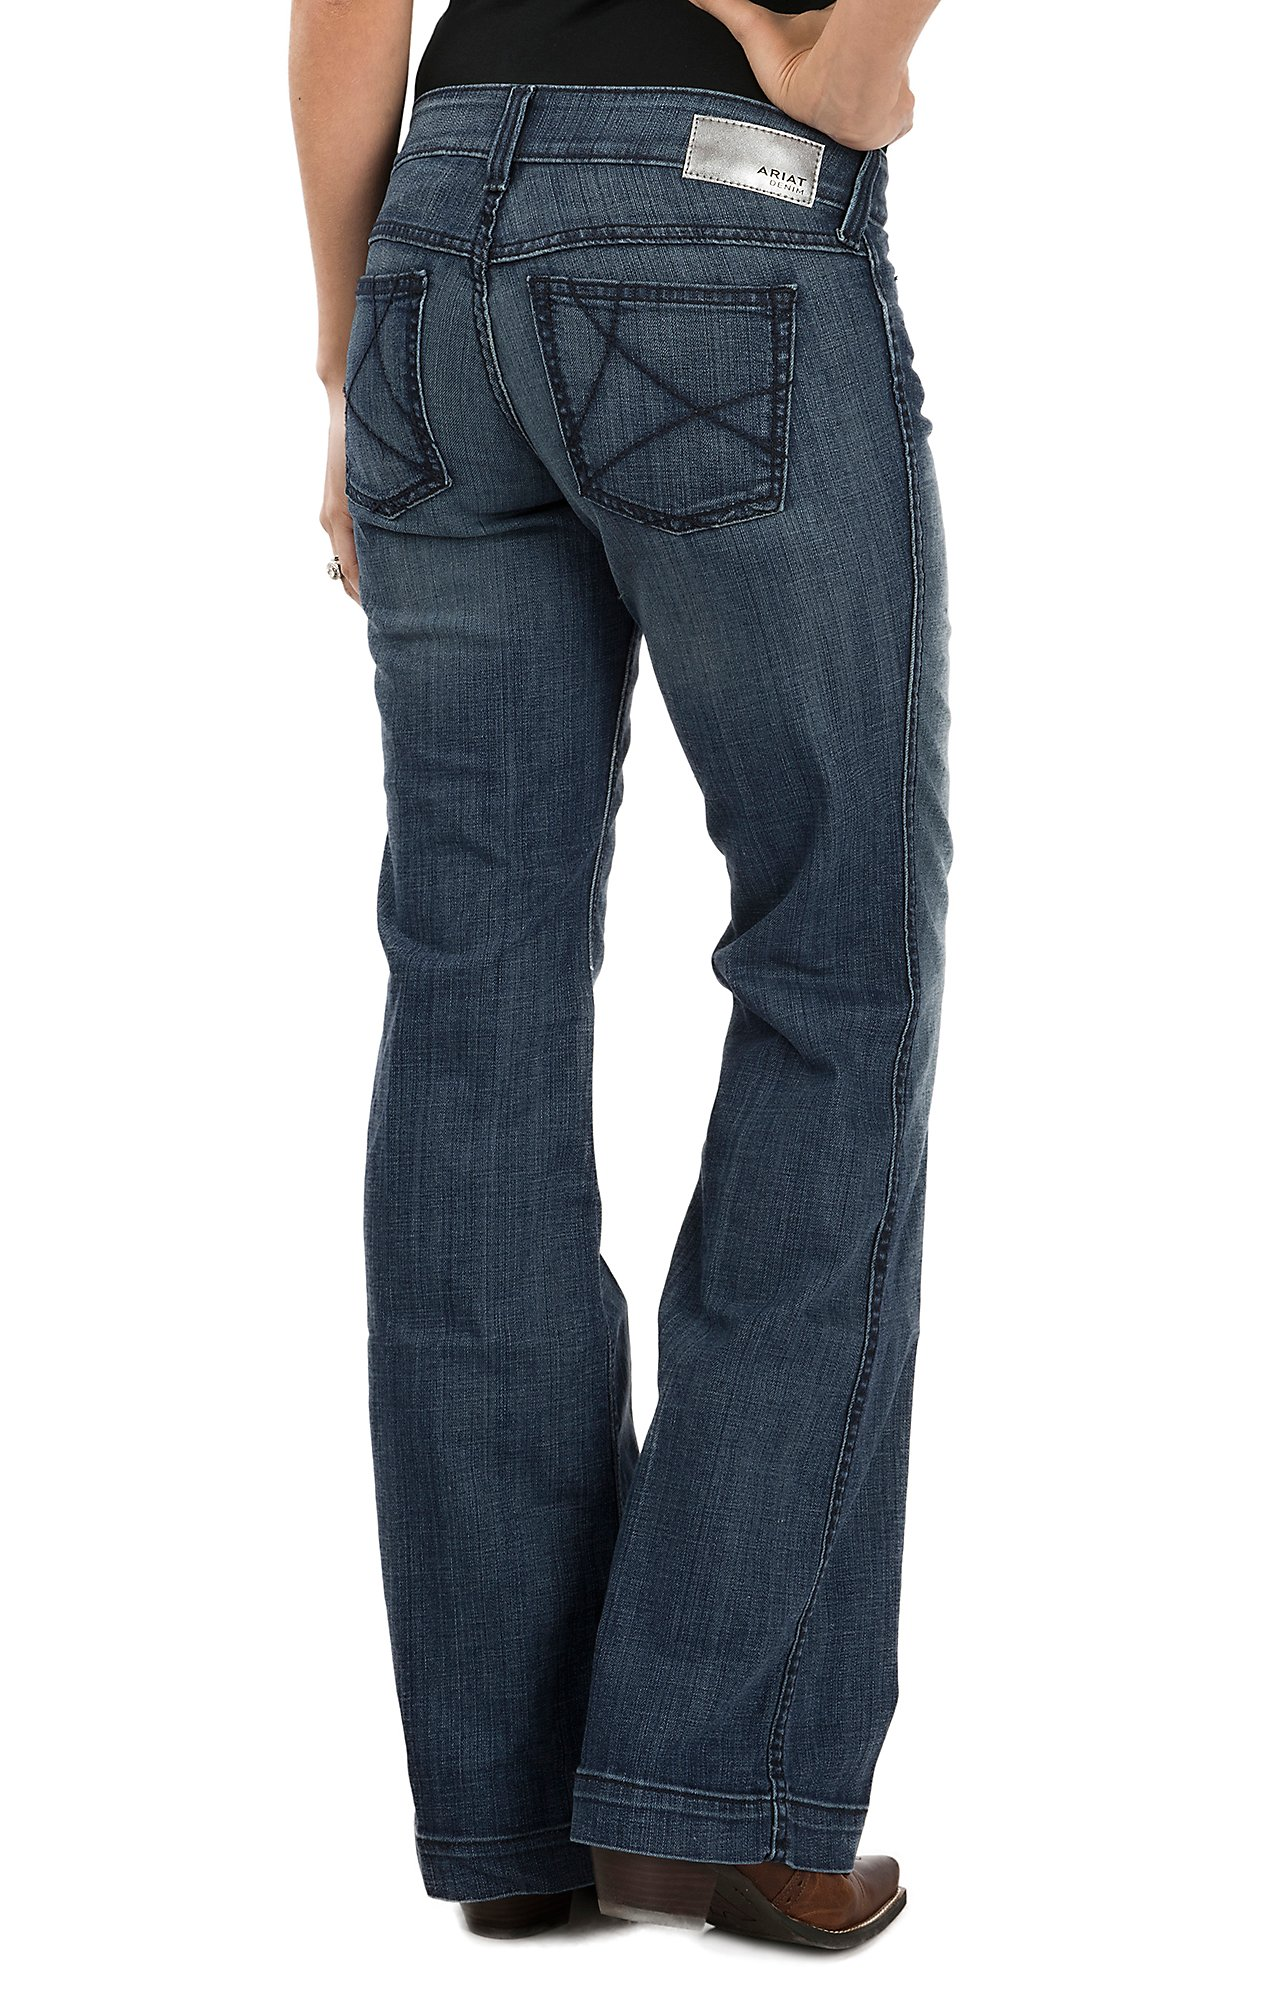 Ariat Women's Mid Rise Wide Leg Dark Wash Trouser Jeans | Cavender's